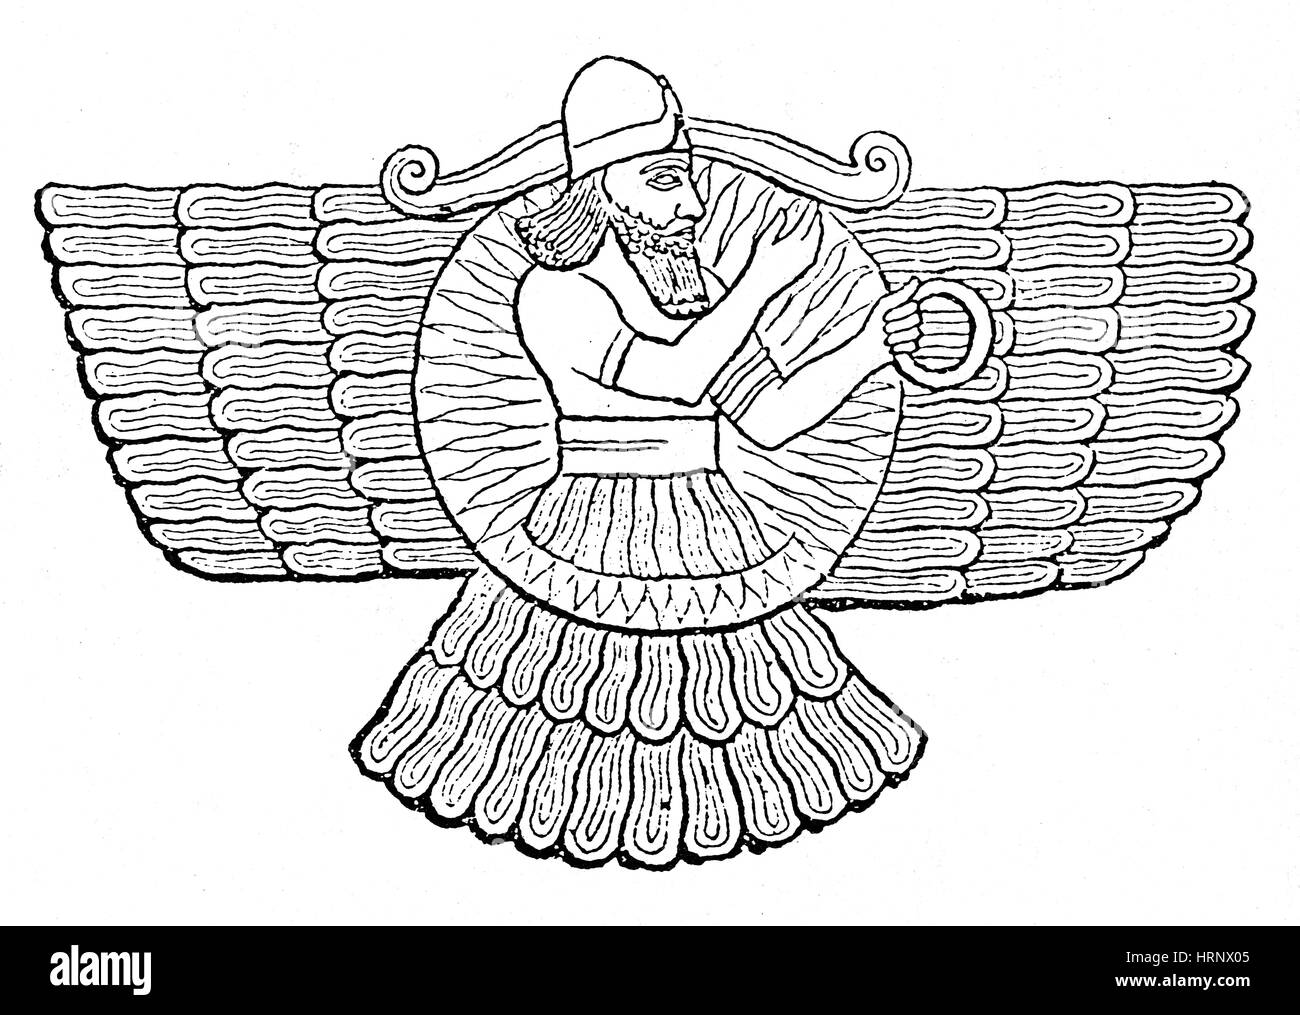 Ashur, Assyrian God - Stock Image